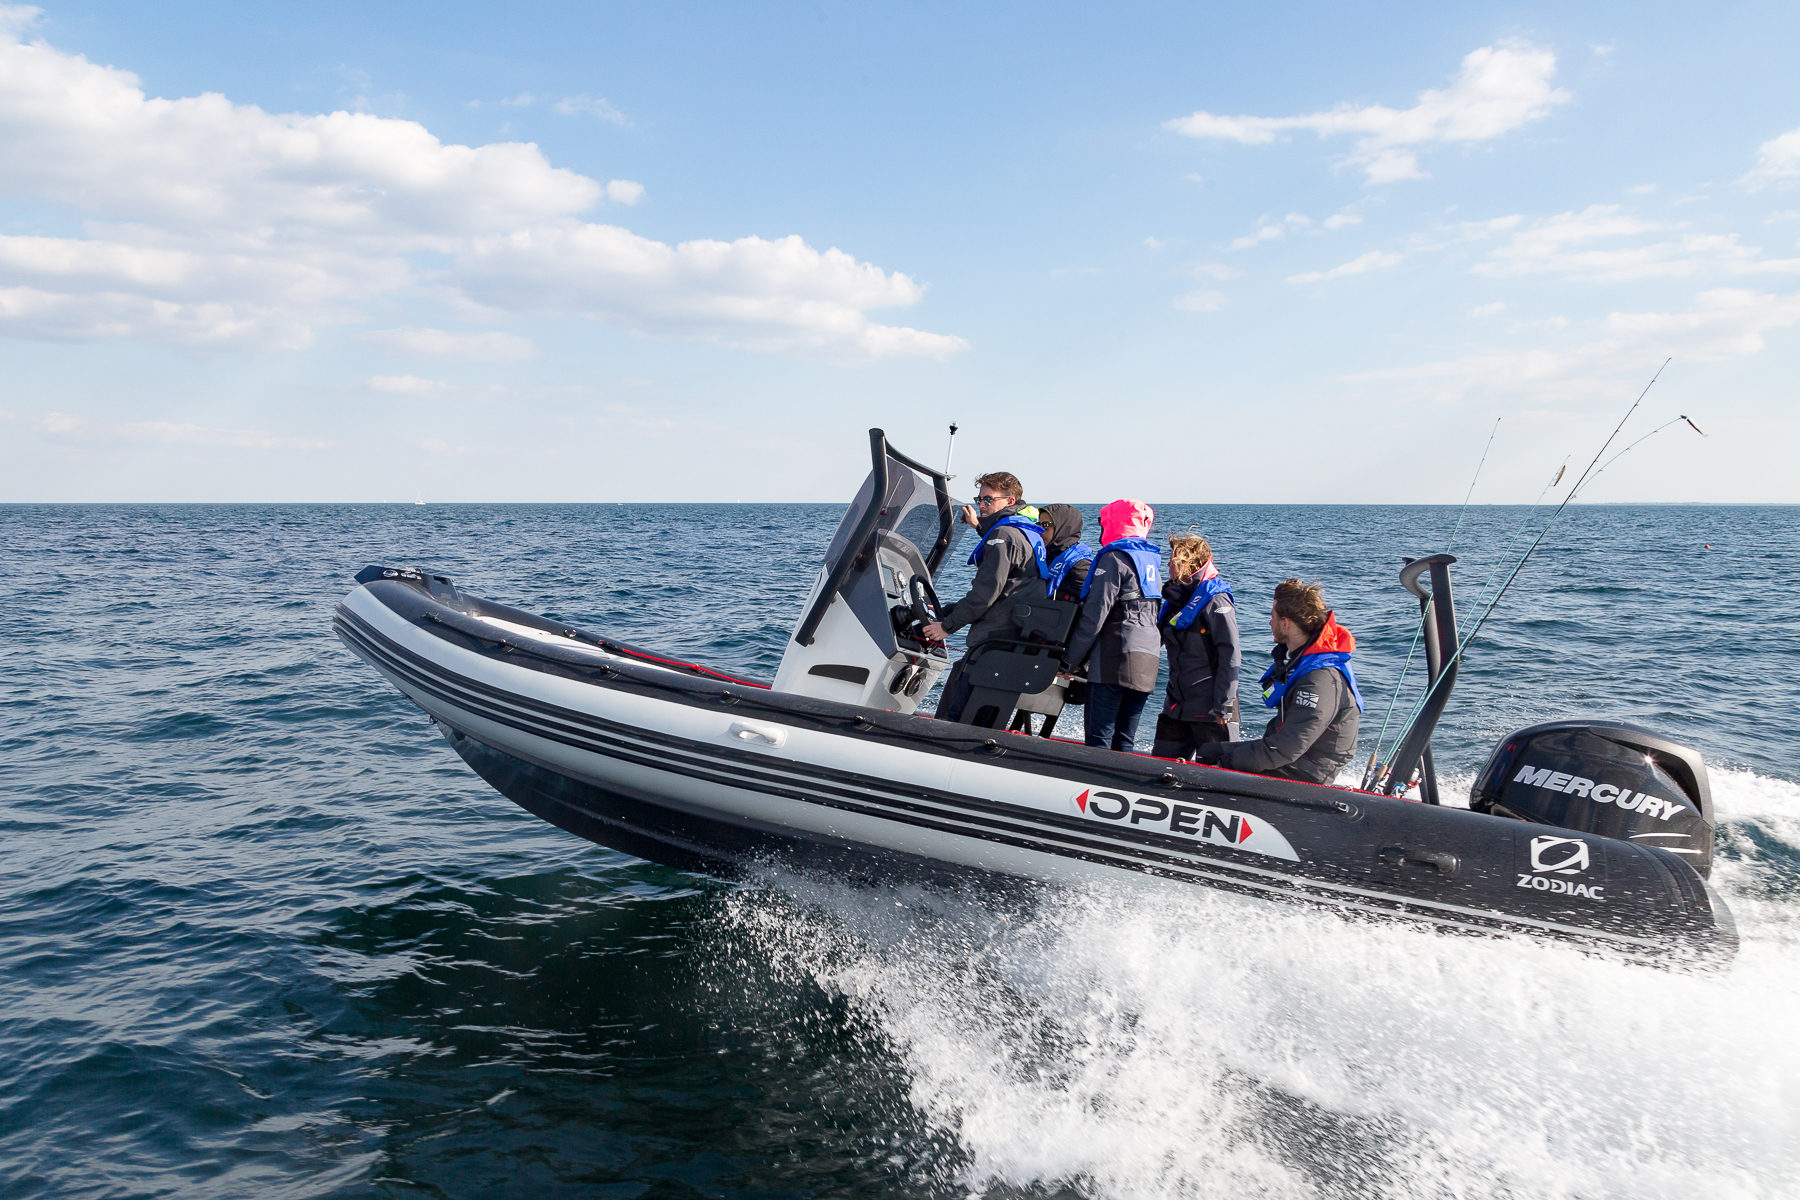 Avon ribs inflatable boat center portland boat show 2018 ccuart Images